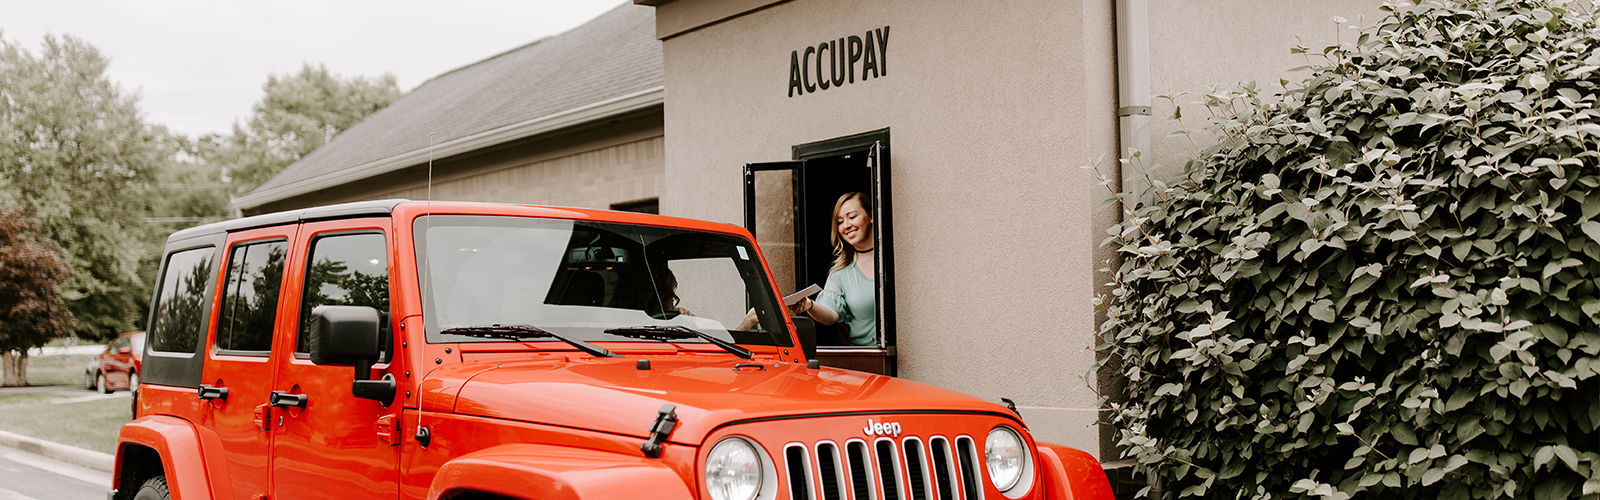 Accupay Drive Thru Window